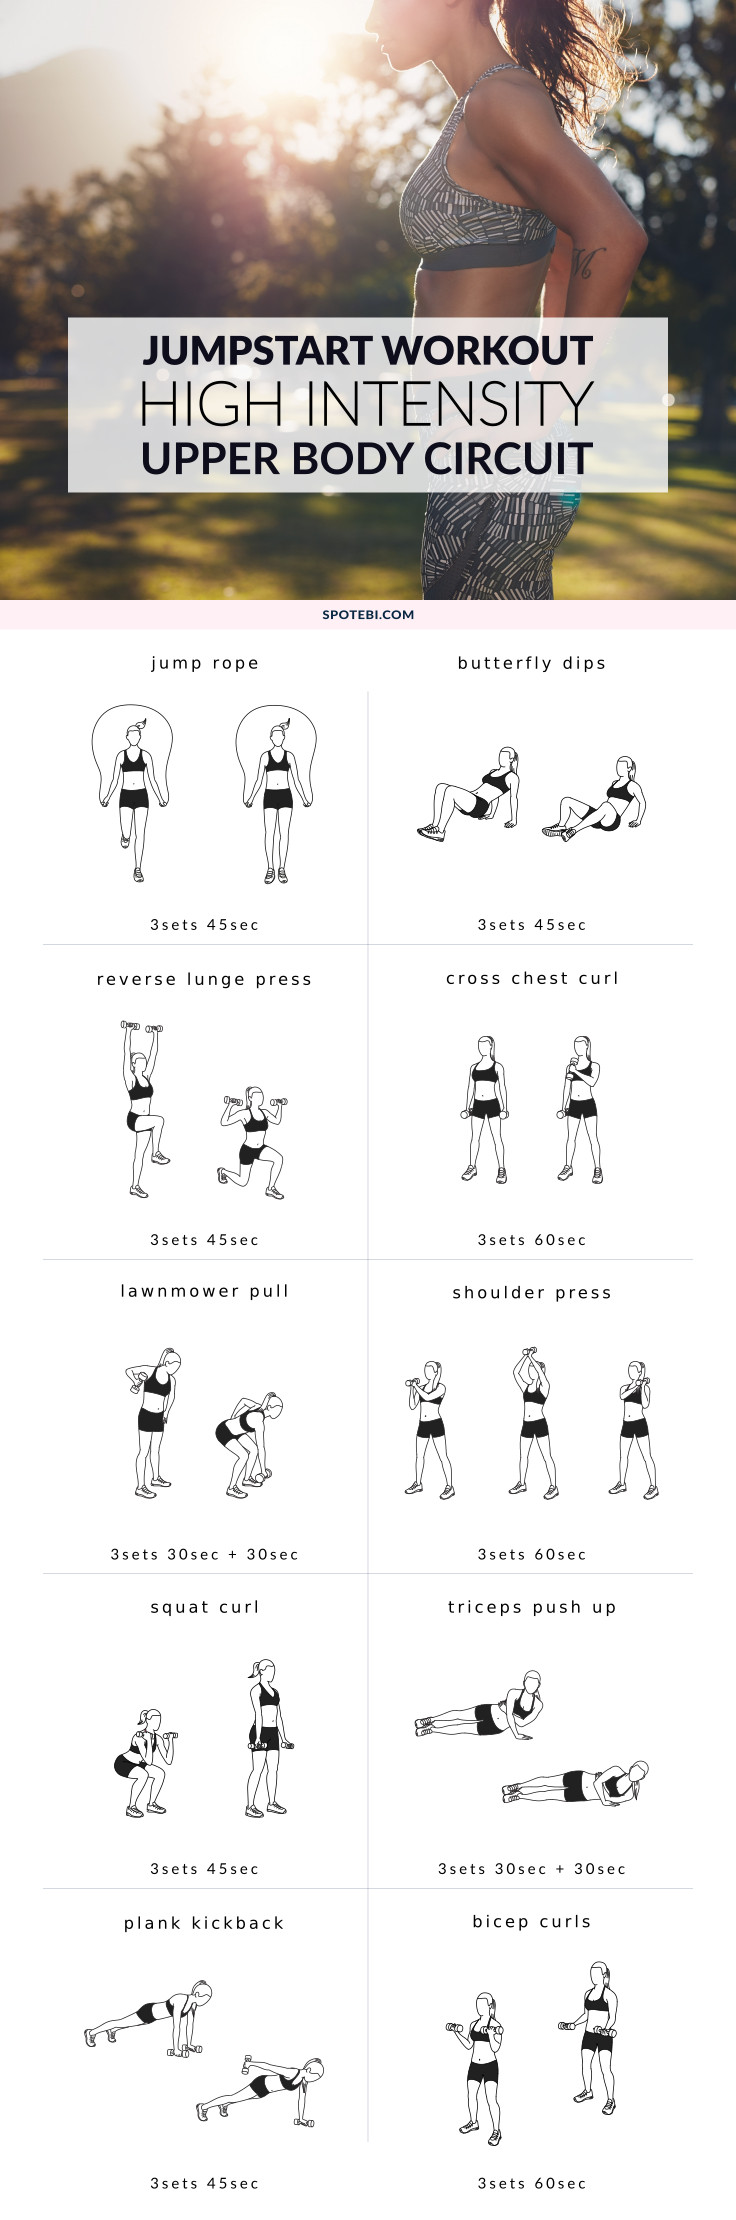 Jumpstart your weight loss and sculpt sleek, sexy arms and shoulders with this high-intensity upper body workout. A mix of cardio and strength training moves designed to burn off fat fast! https://www.spotebi.com/workout-routines/high-intensity-upper-body-workout/